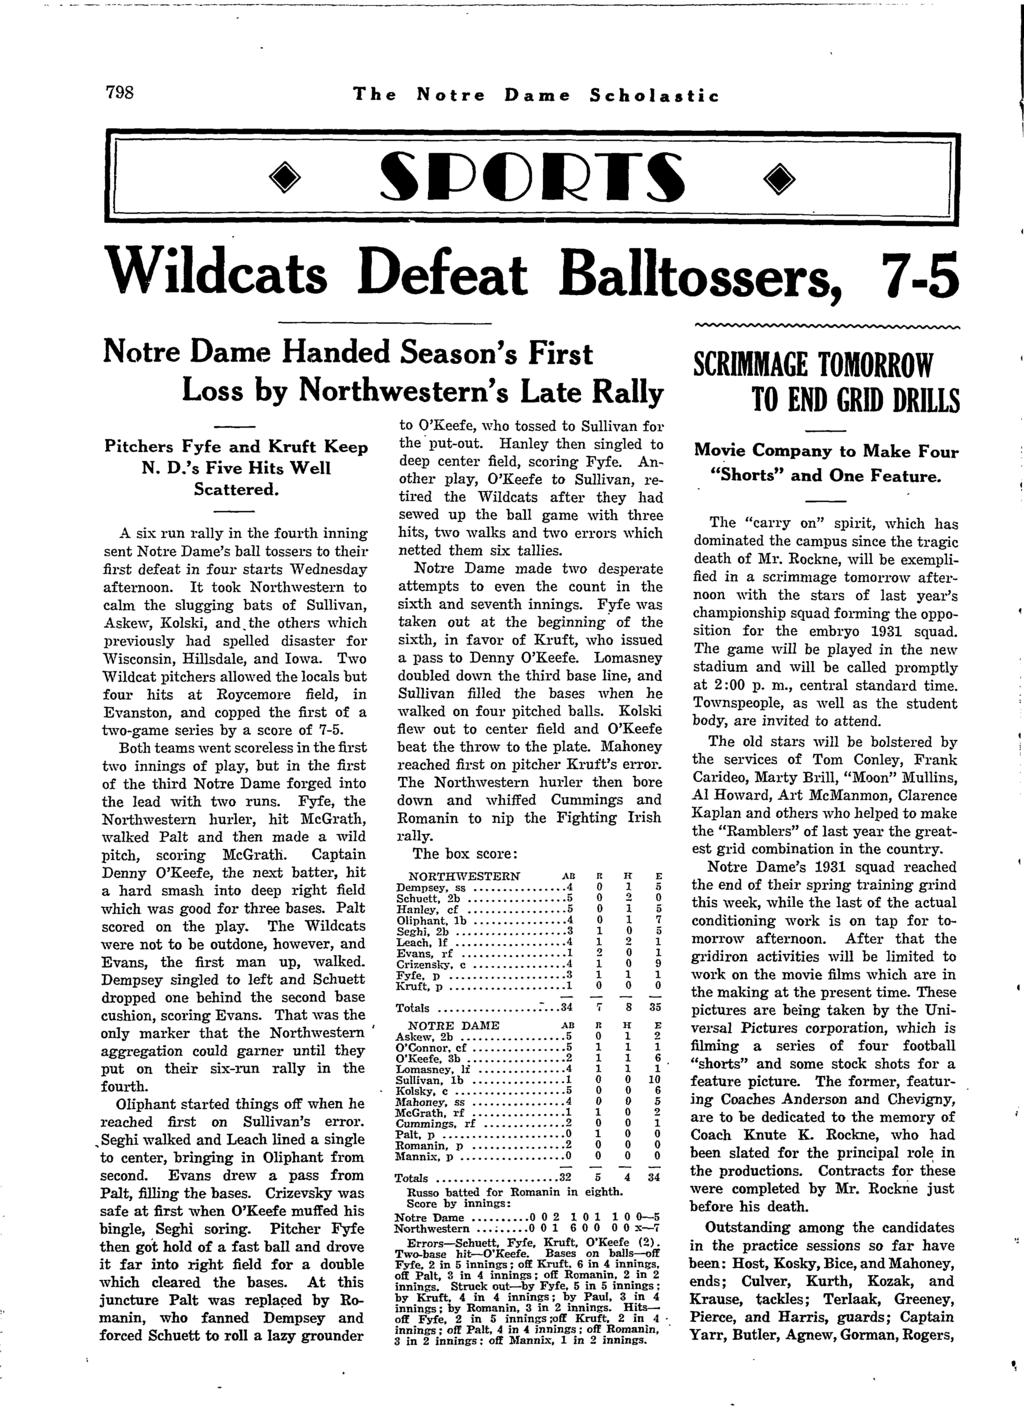 798 The Notre Dame Scholastic Wildcats Defeat Balltossers, 7-5 Notre Dame Handed Season's First Loss by Northwestern's Late Rally to O'Keefe, who tossed to Sullivan for Pitchers Fyfe and Kruft Keep